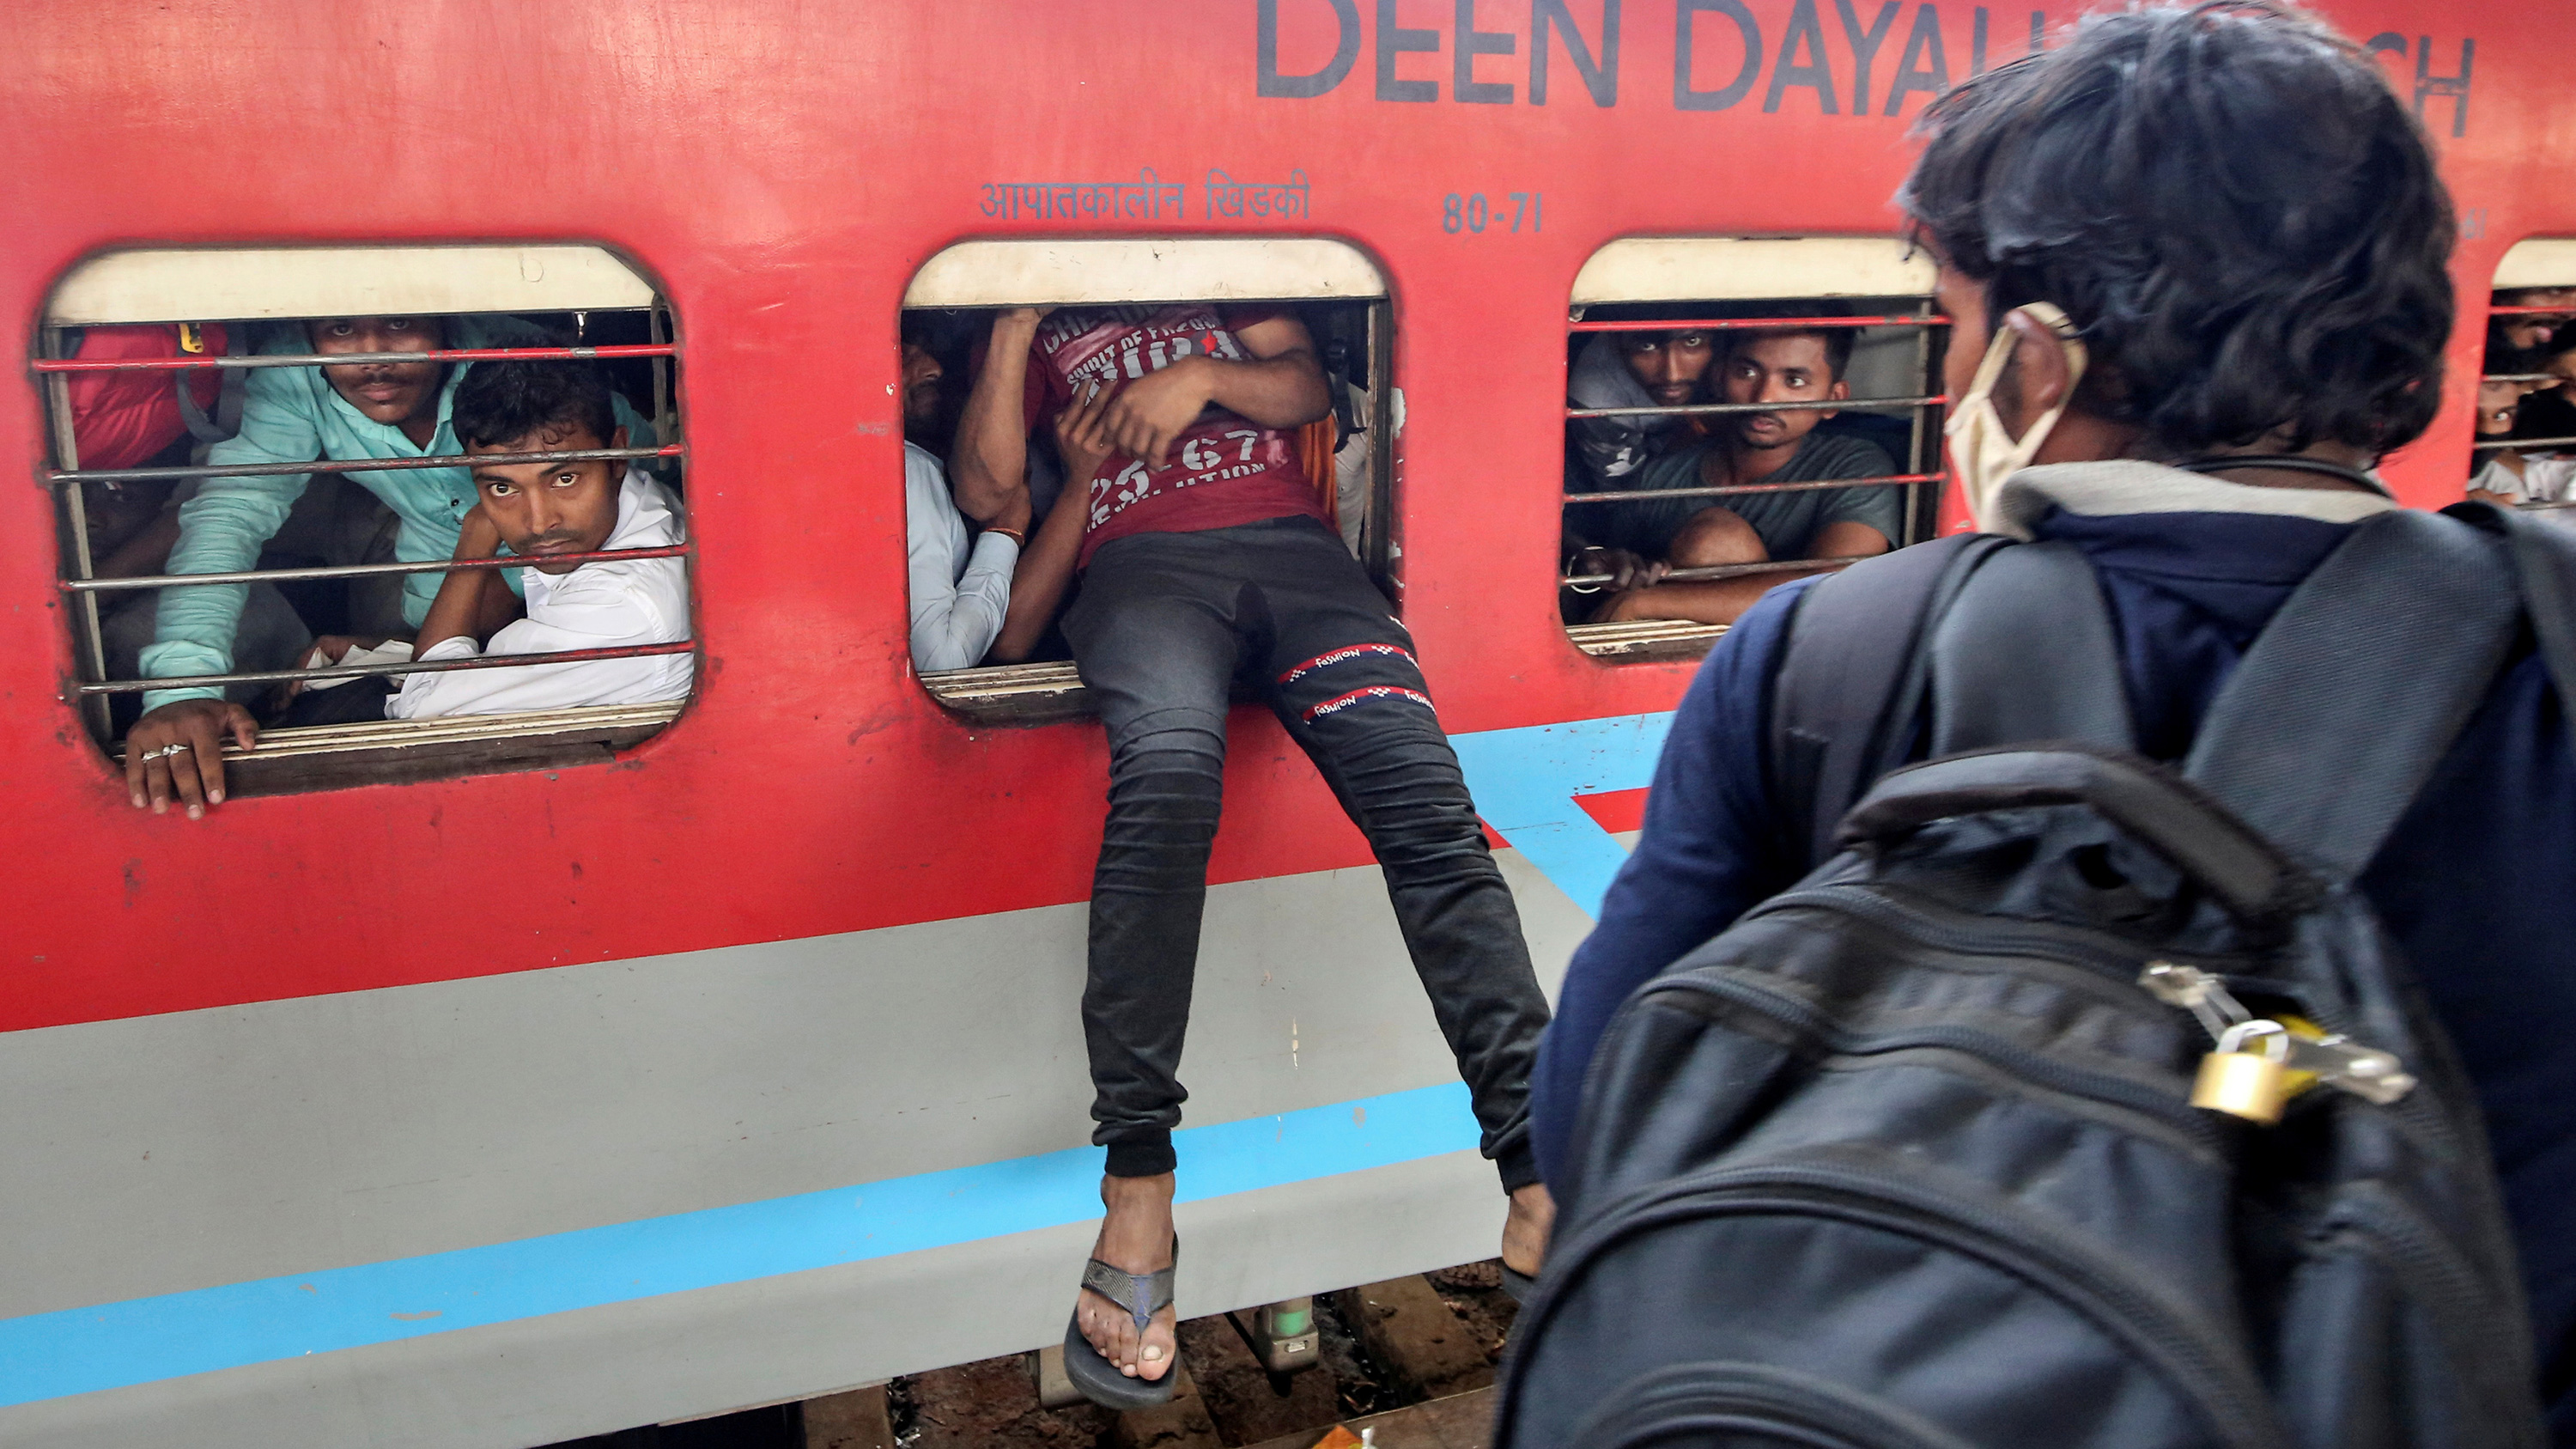 This is a striking photo of someone trying to scramble through the open window of a bright red passenger car on a train. Their legs from the waist down dangle precariously out the window.